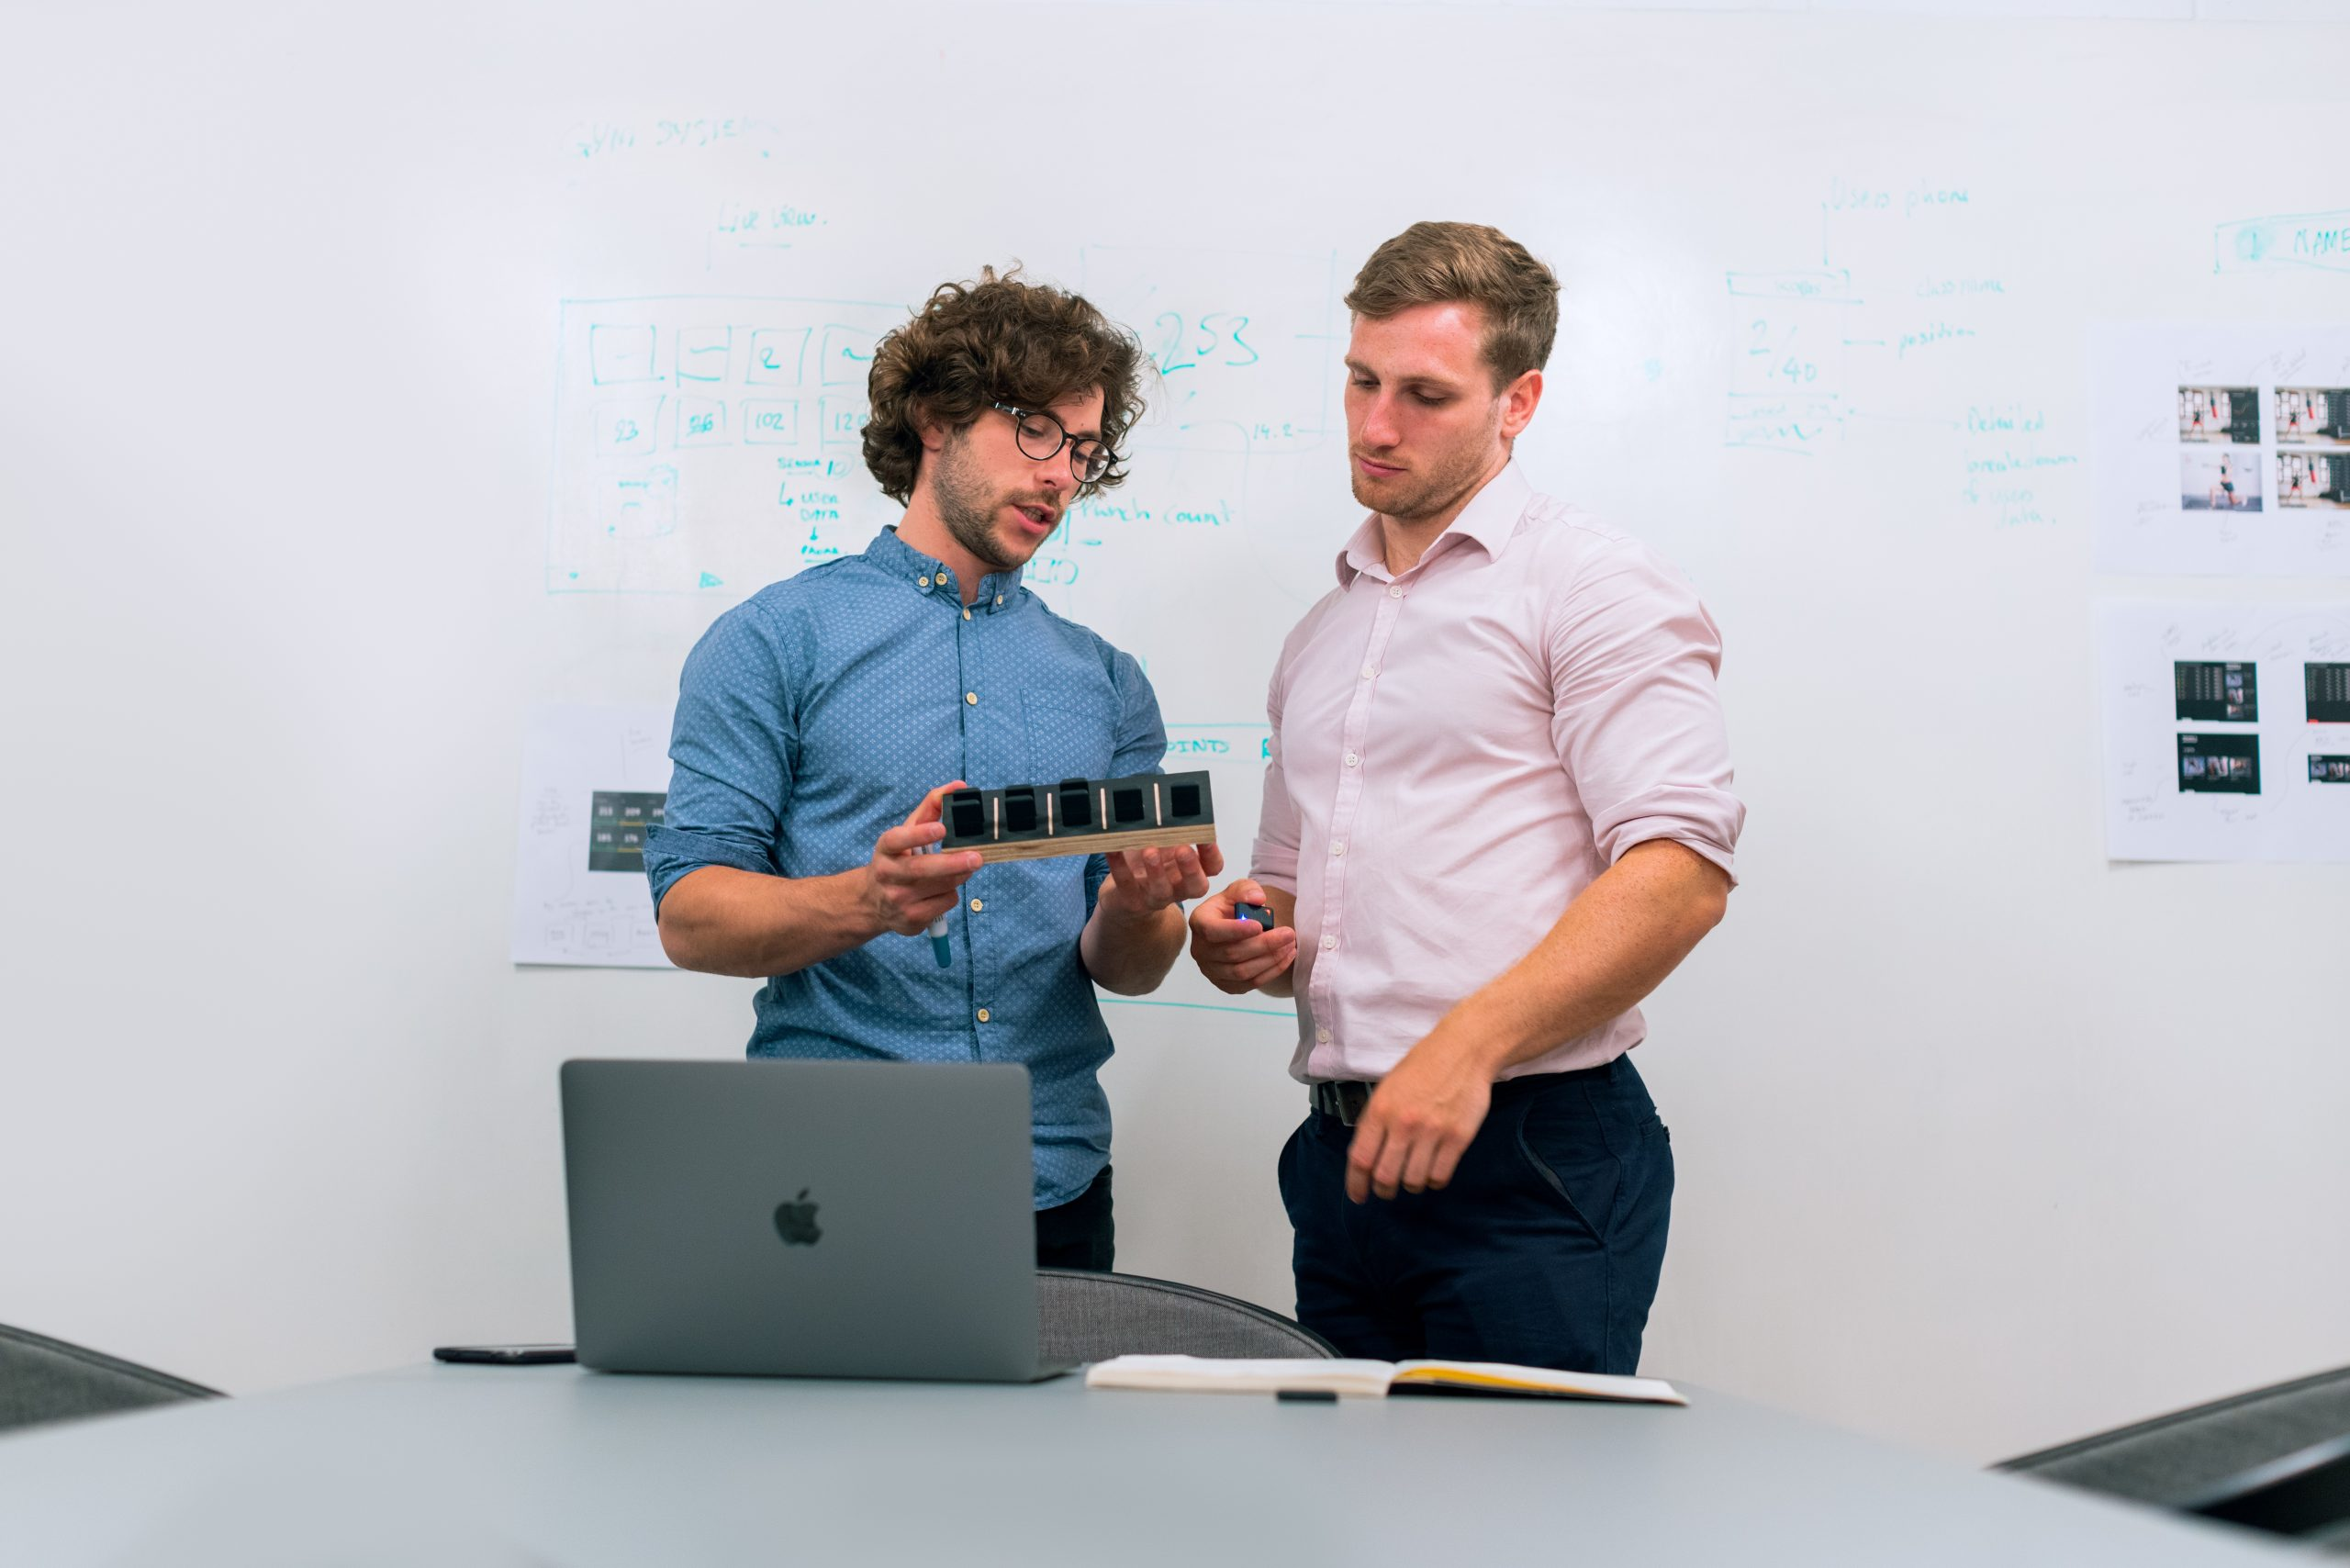 5 tips on how to communicate sensitively mirroring